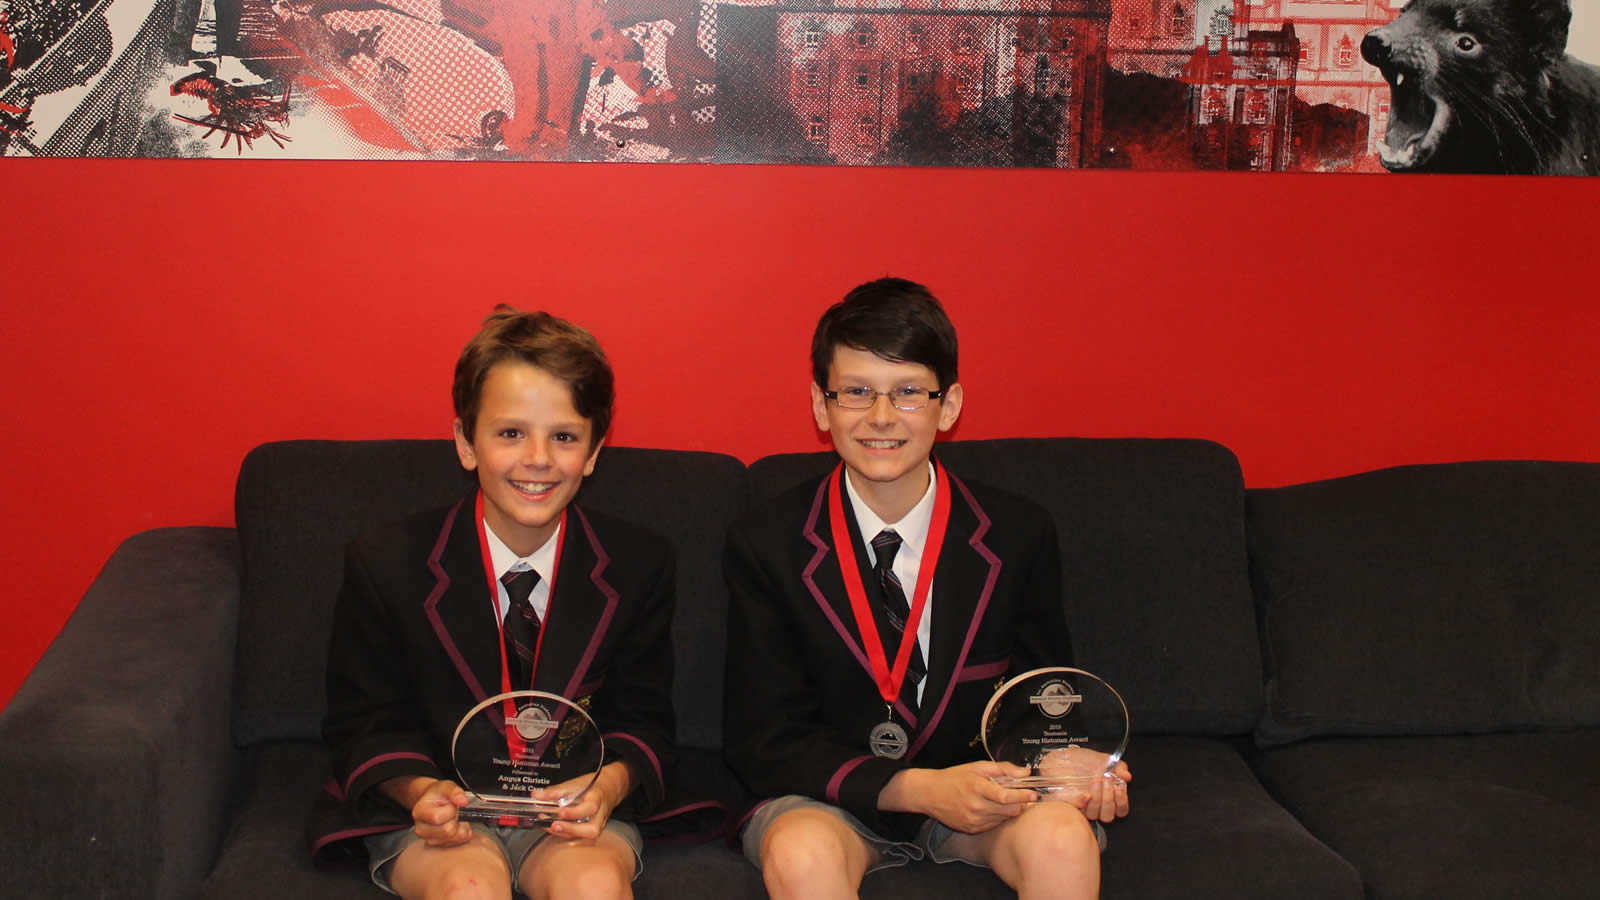 Angus Christie and Jack Carr, National History Challenge winners (large)